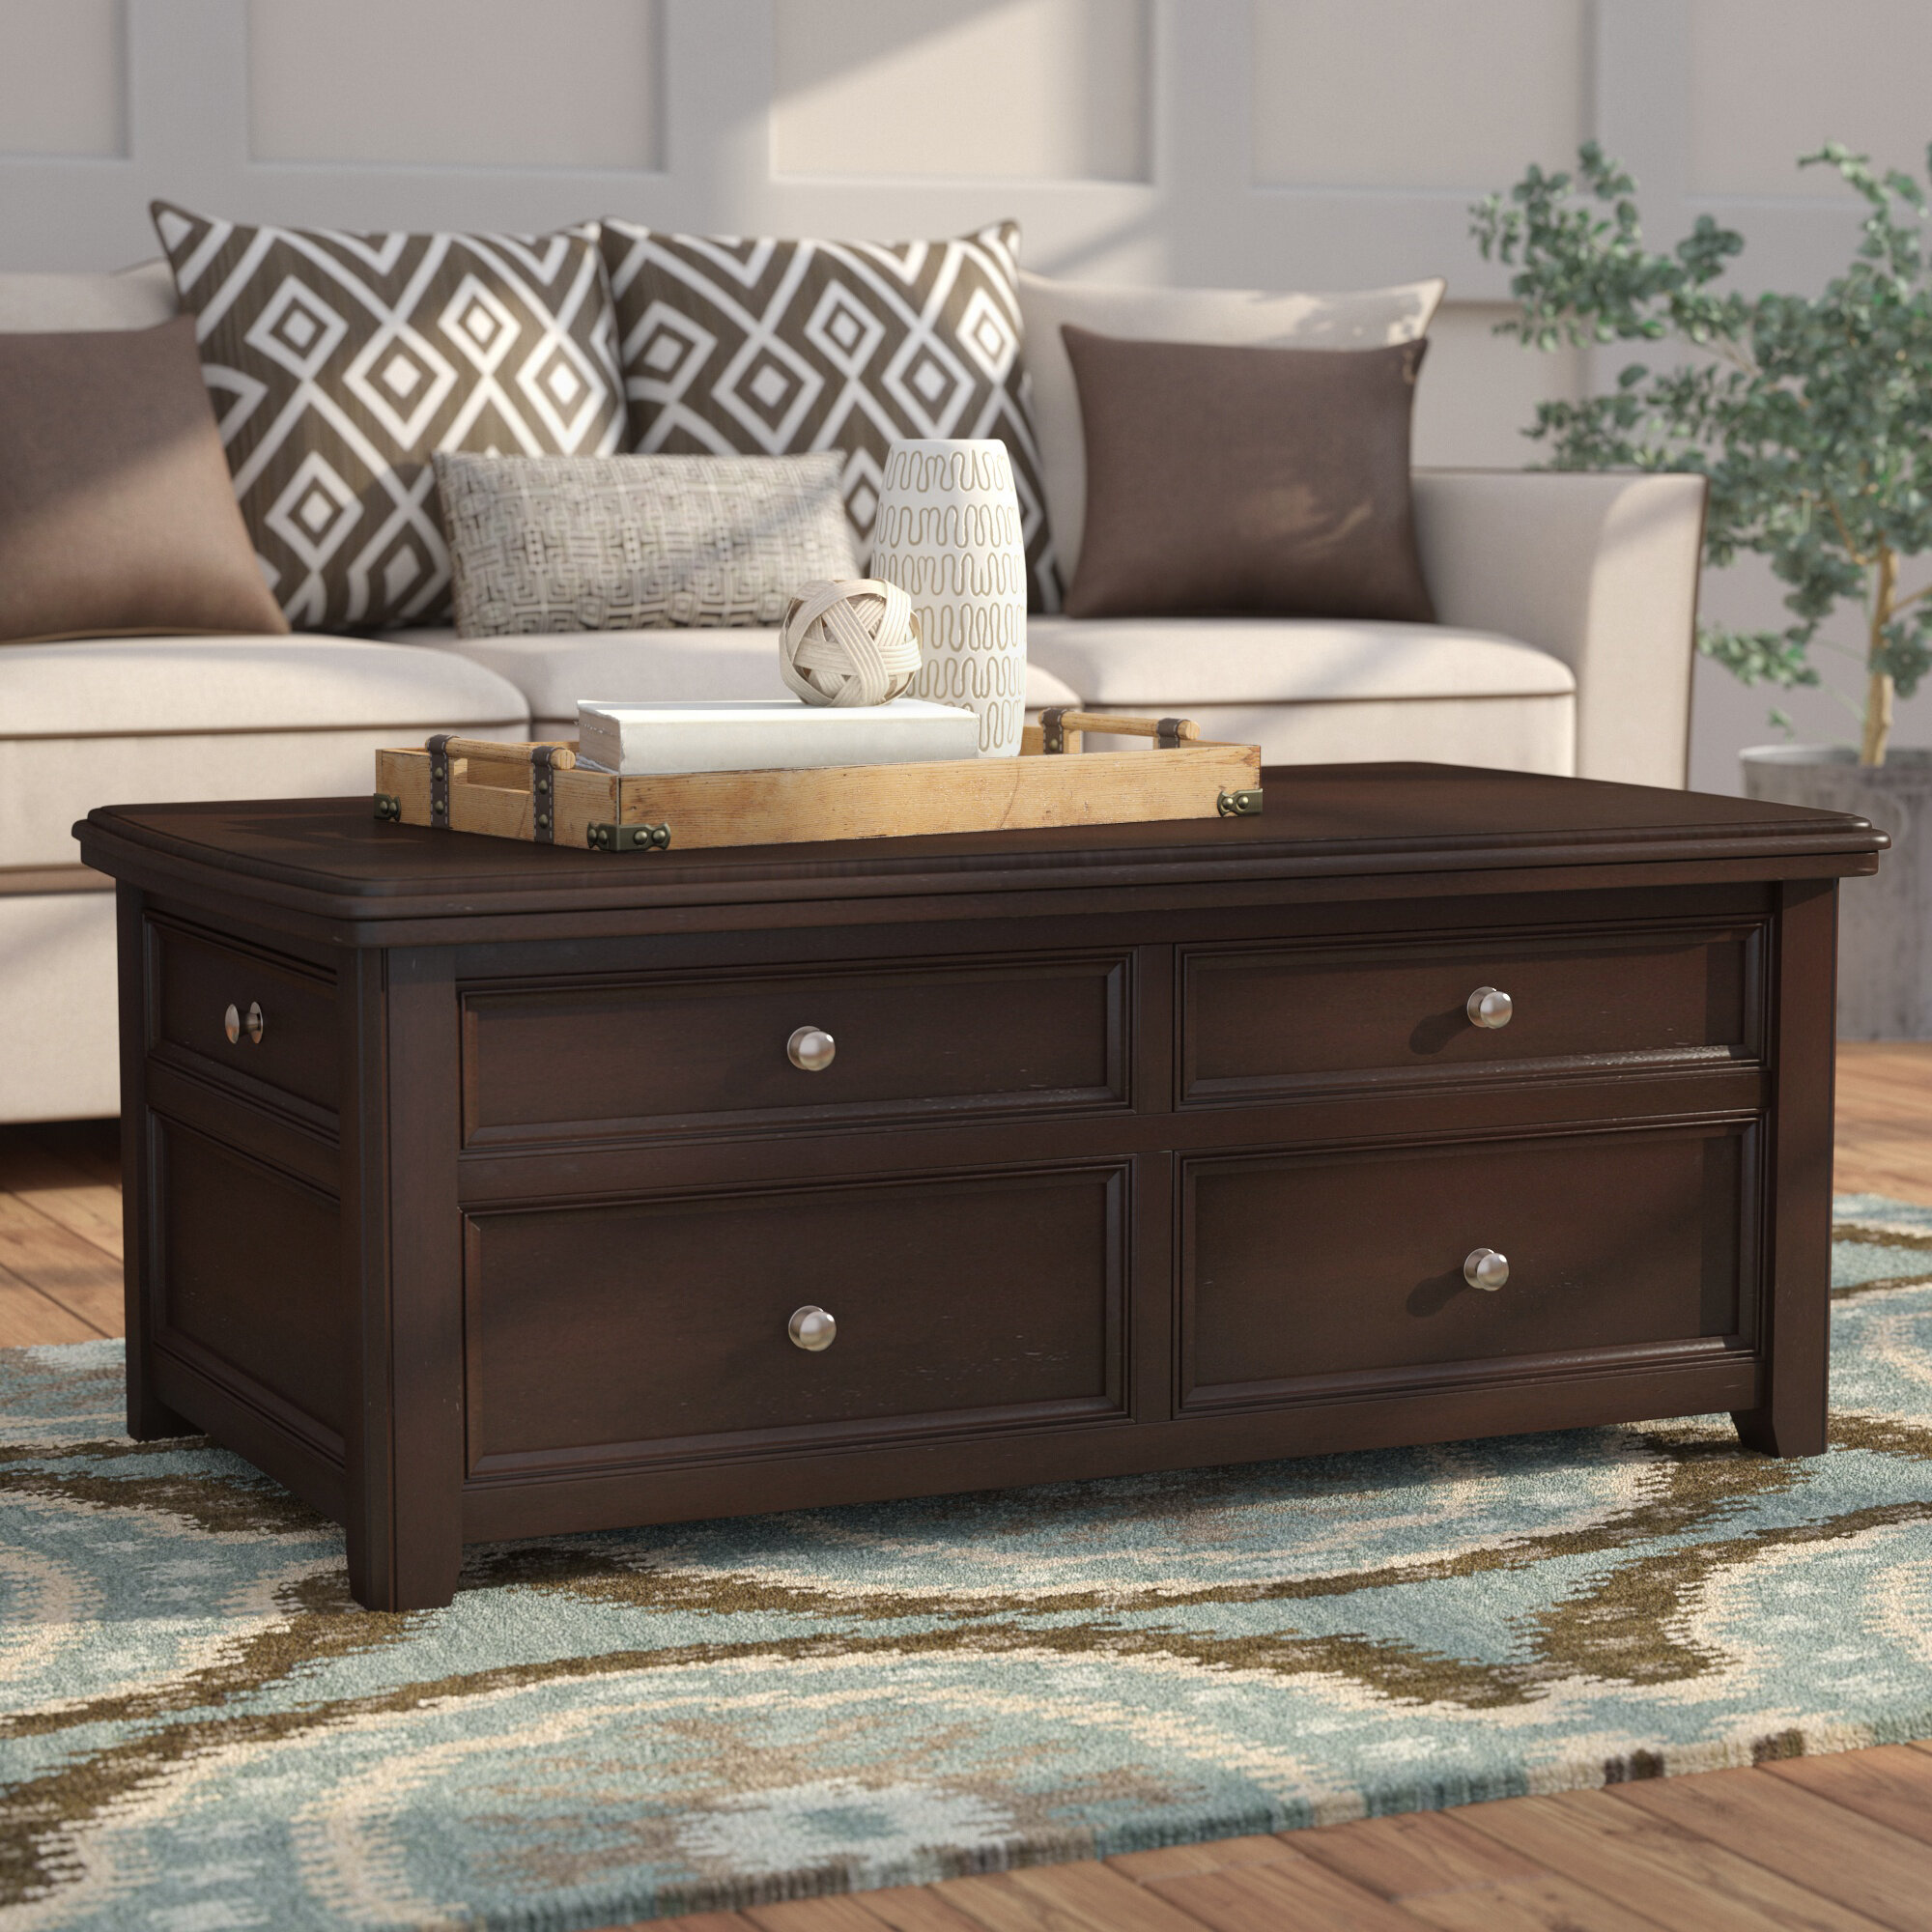 vintage table as rustic inspirational trunk use s coffee of steamer